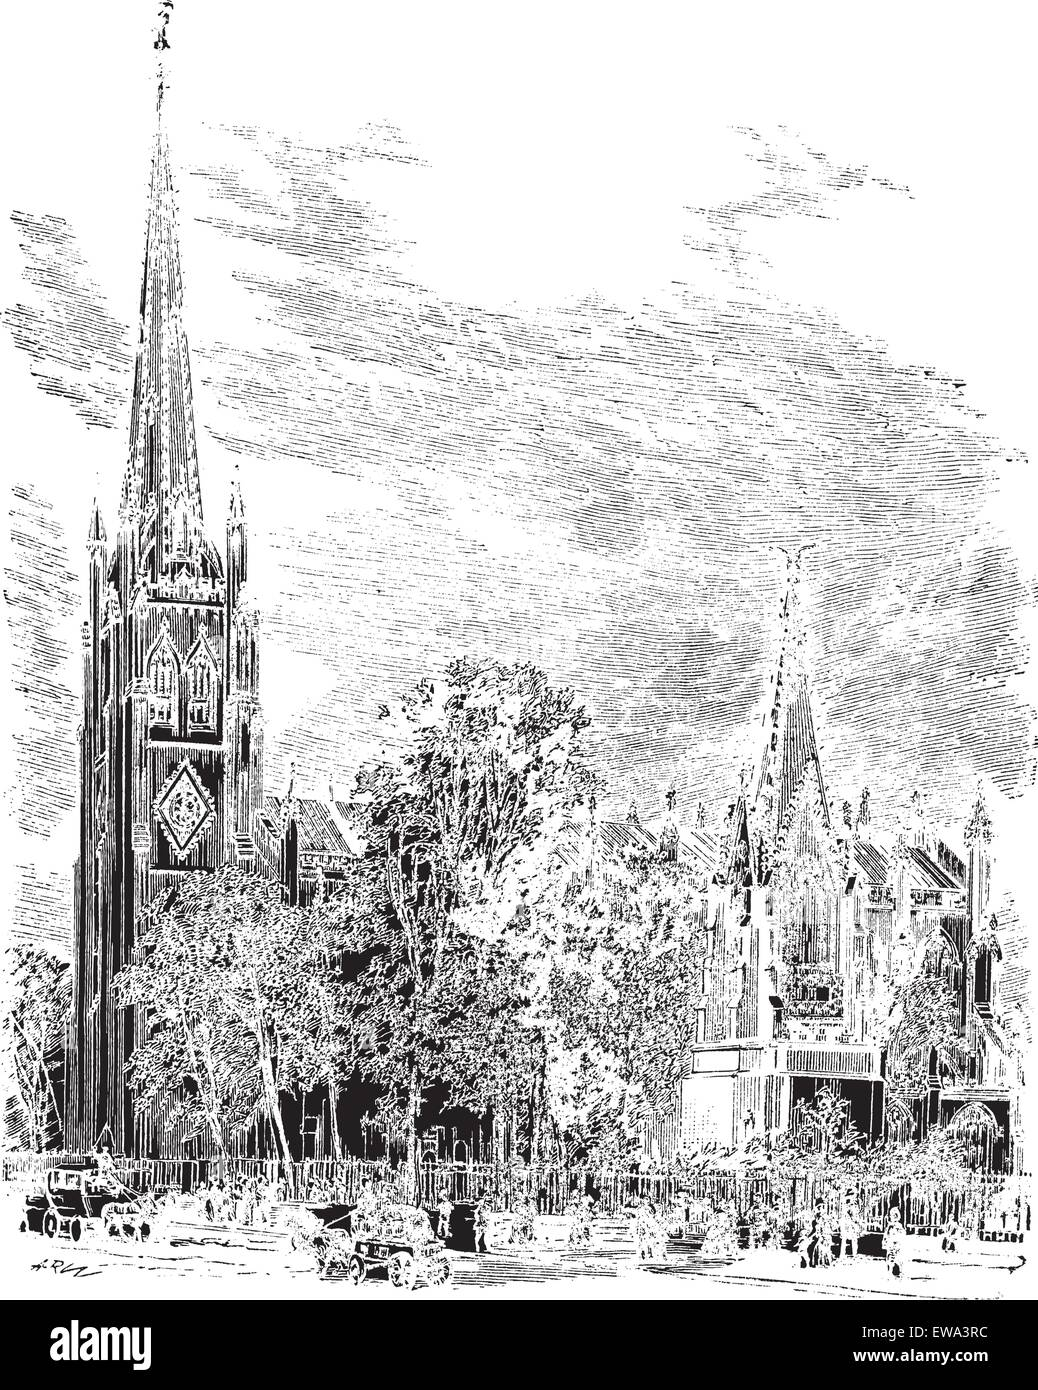 Trinity Cathedral in Newark, New Jersey, USA, vintage engraved illustration. Trousset encyclopedia (1886 - 1891). - Stock Vector